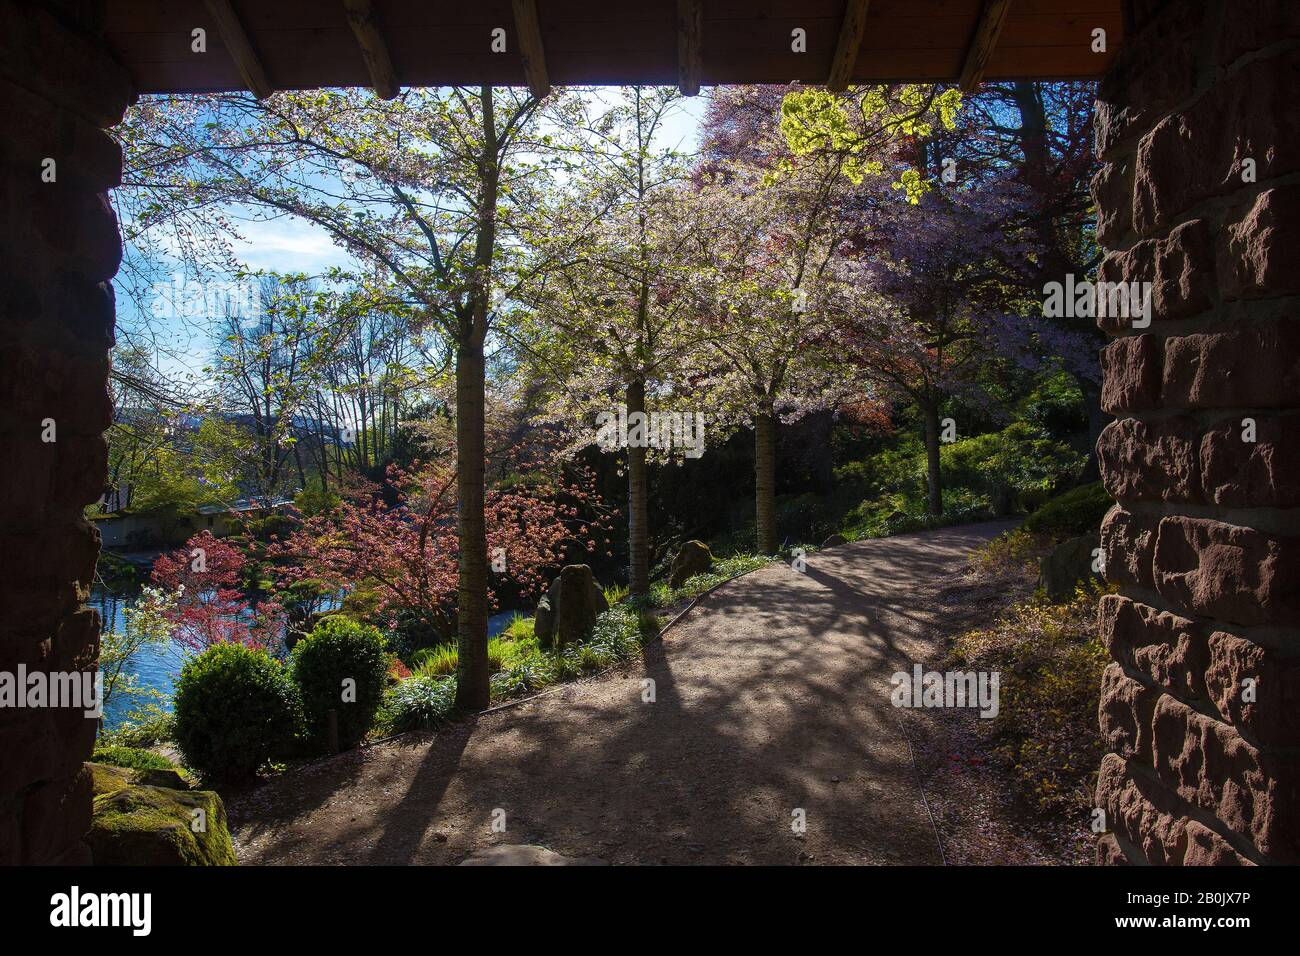 Page 2 Sakura Like High Resolution Stock Photography And Images Alamy